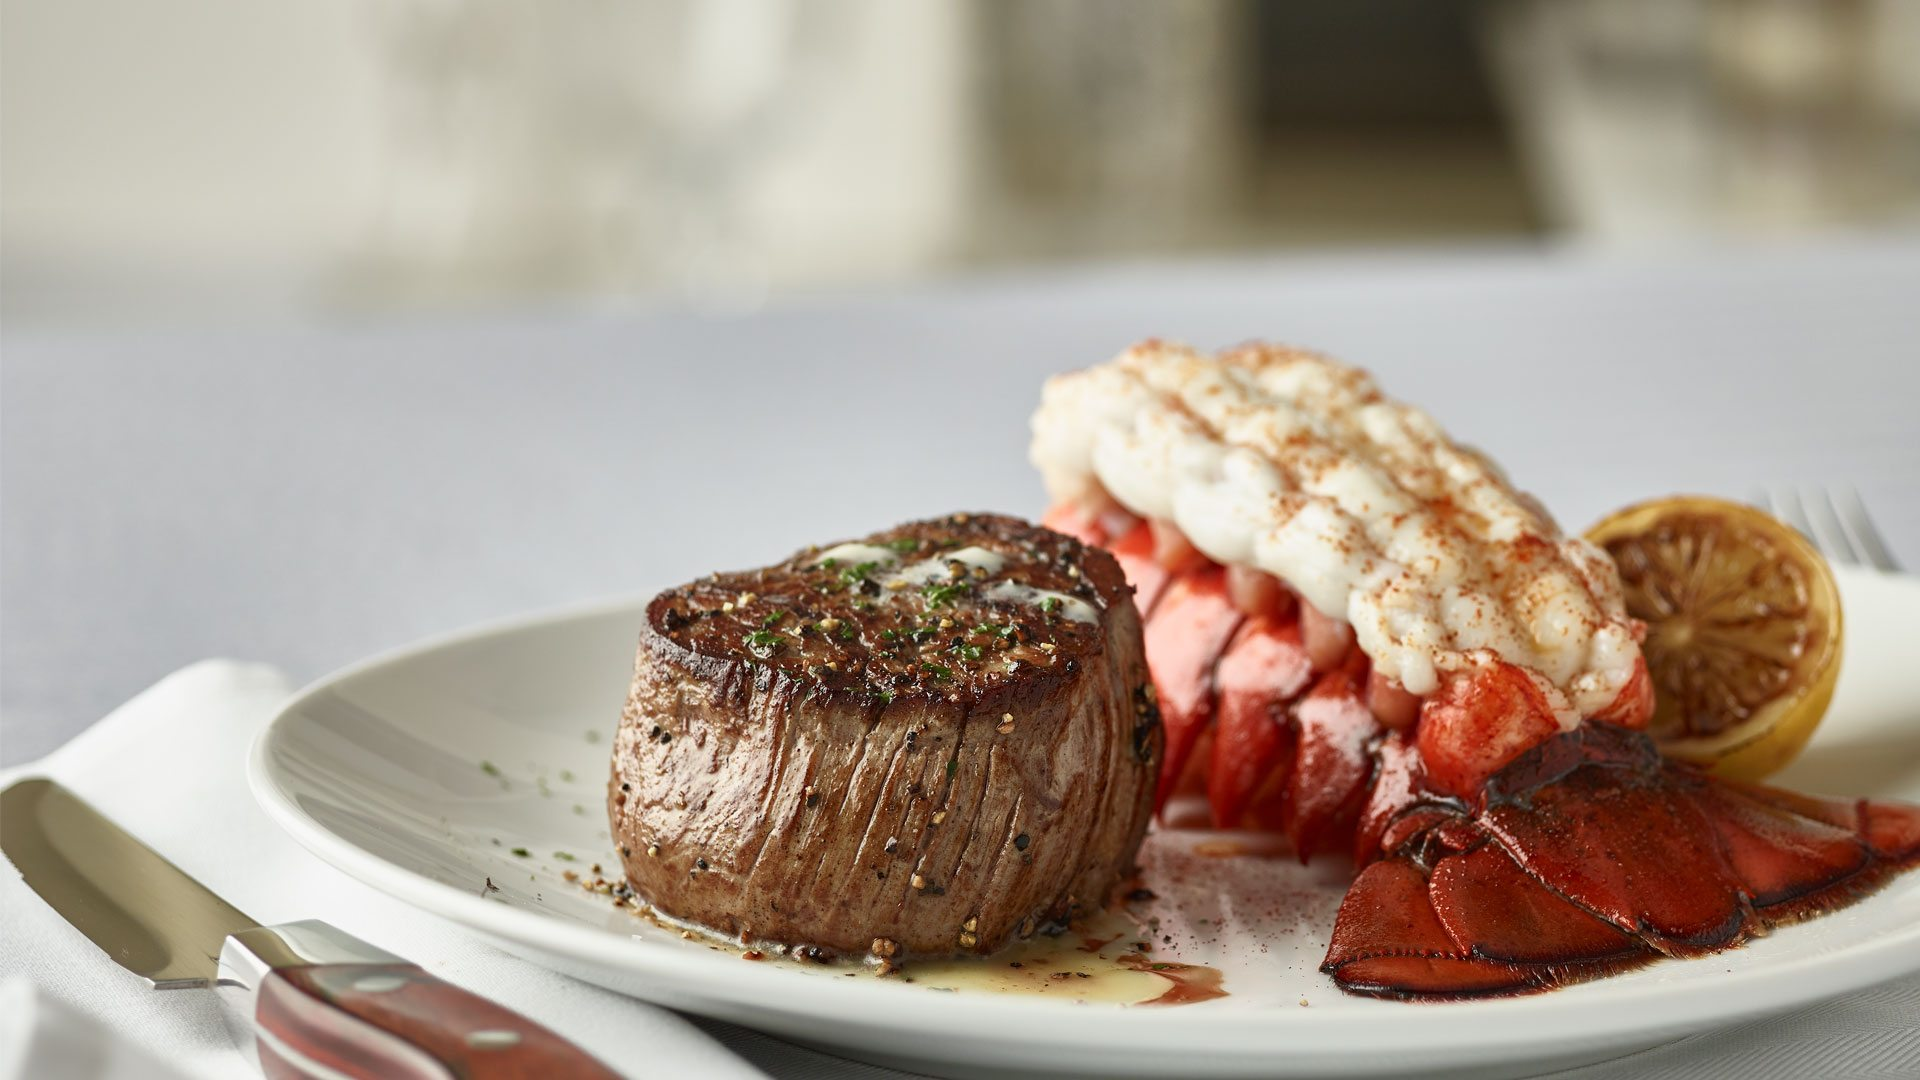 Fleming's Steakhouse in Brickell